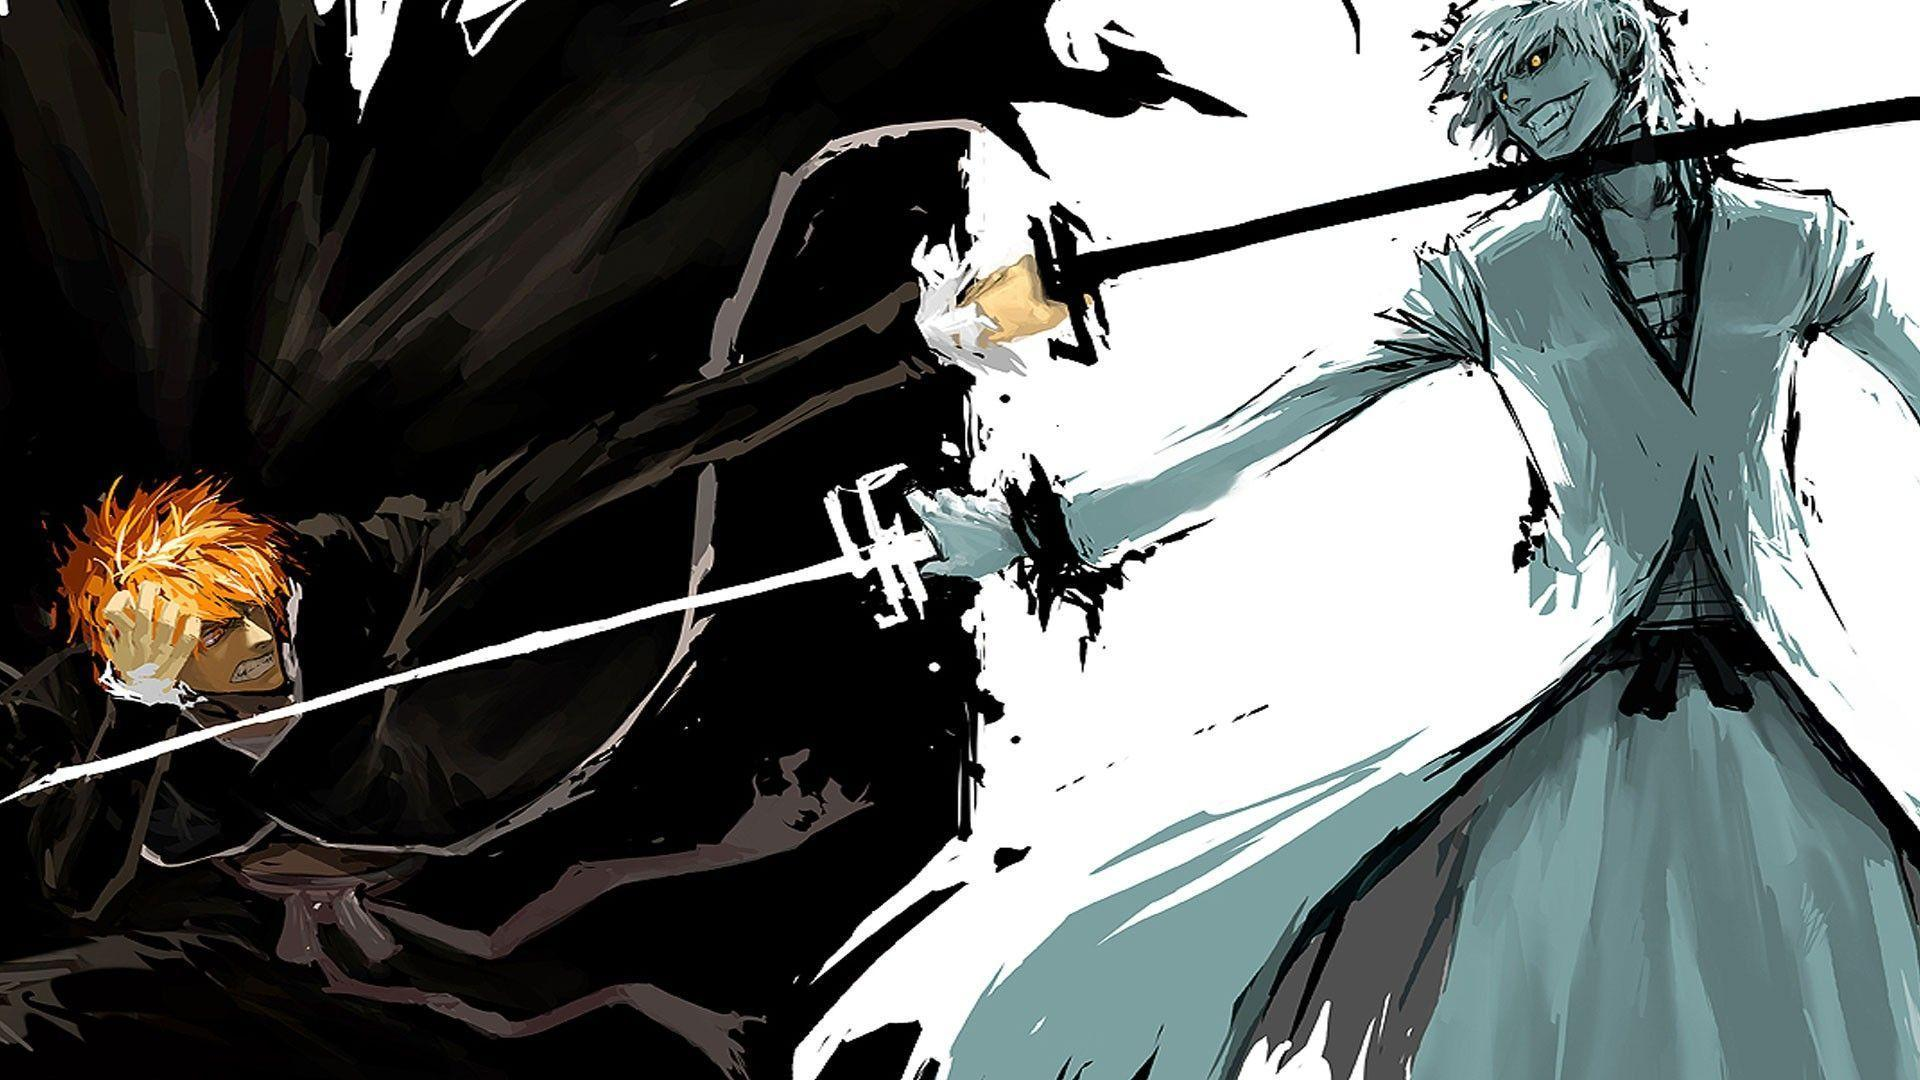 Cool Anime Wallpapers 19578 Full HD Wallpapers Desktop